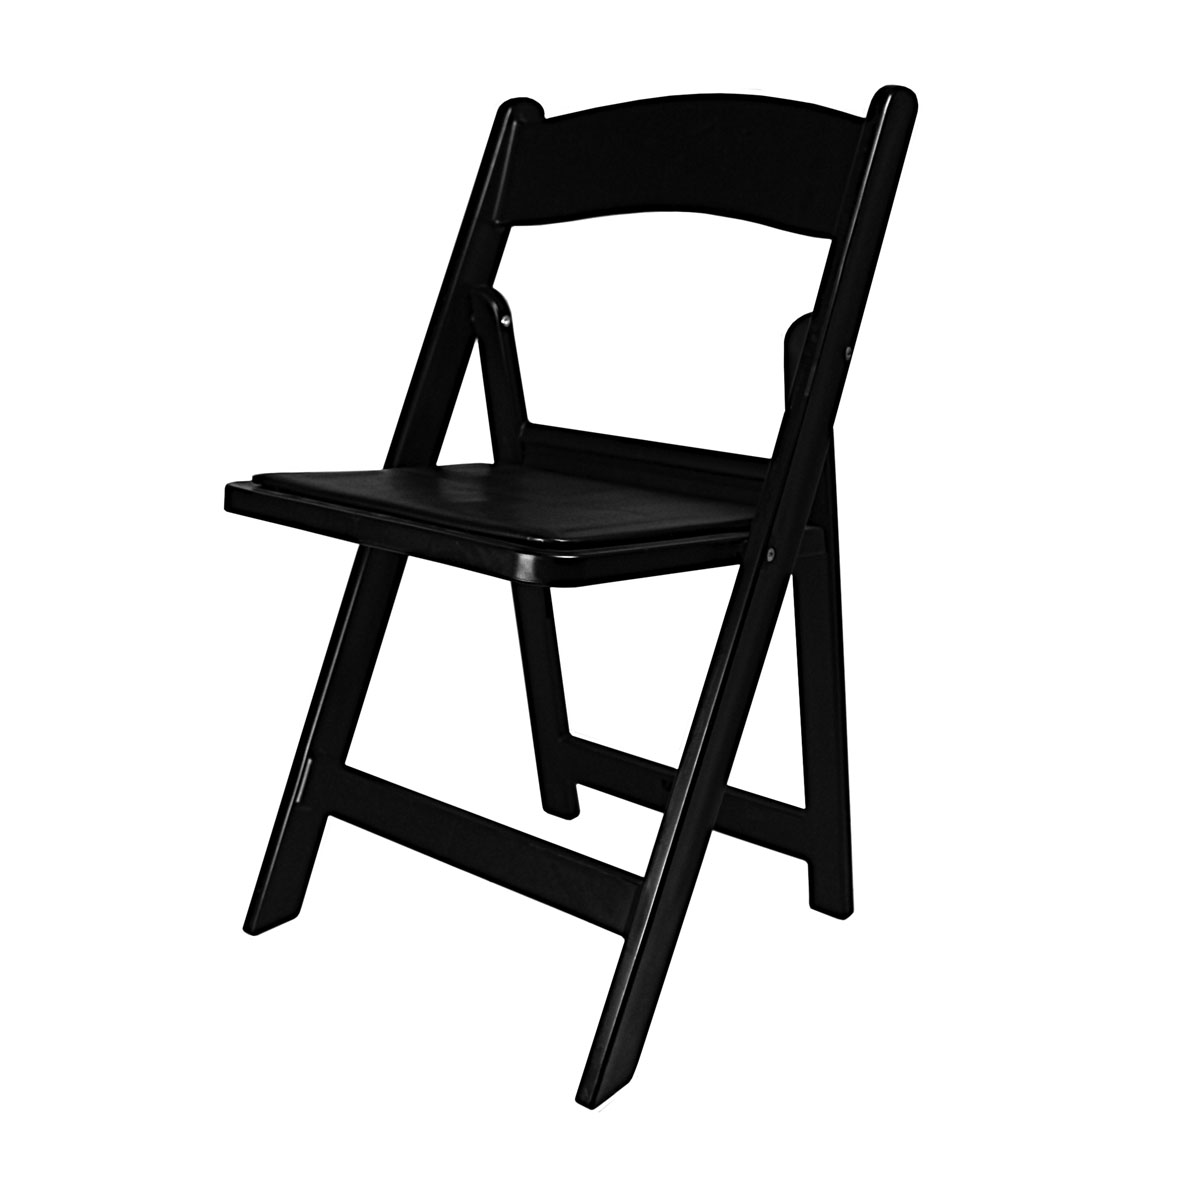 Chair Black Garden With Padded Seat